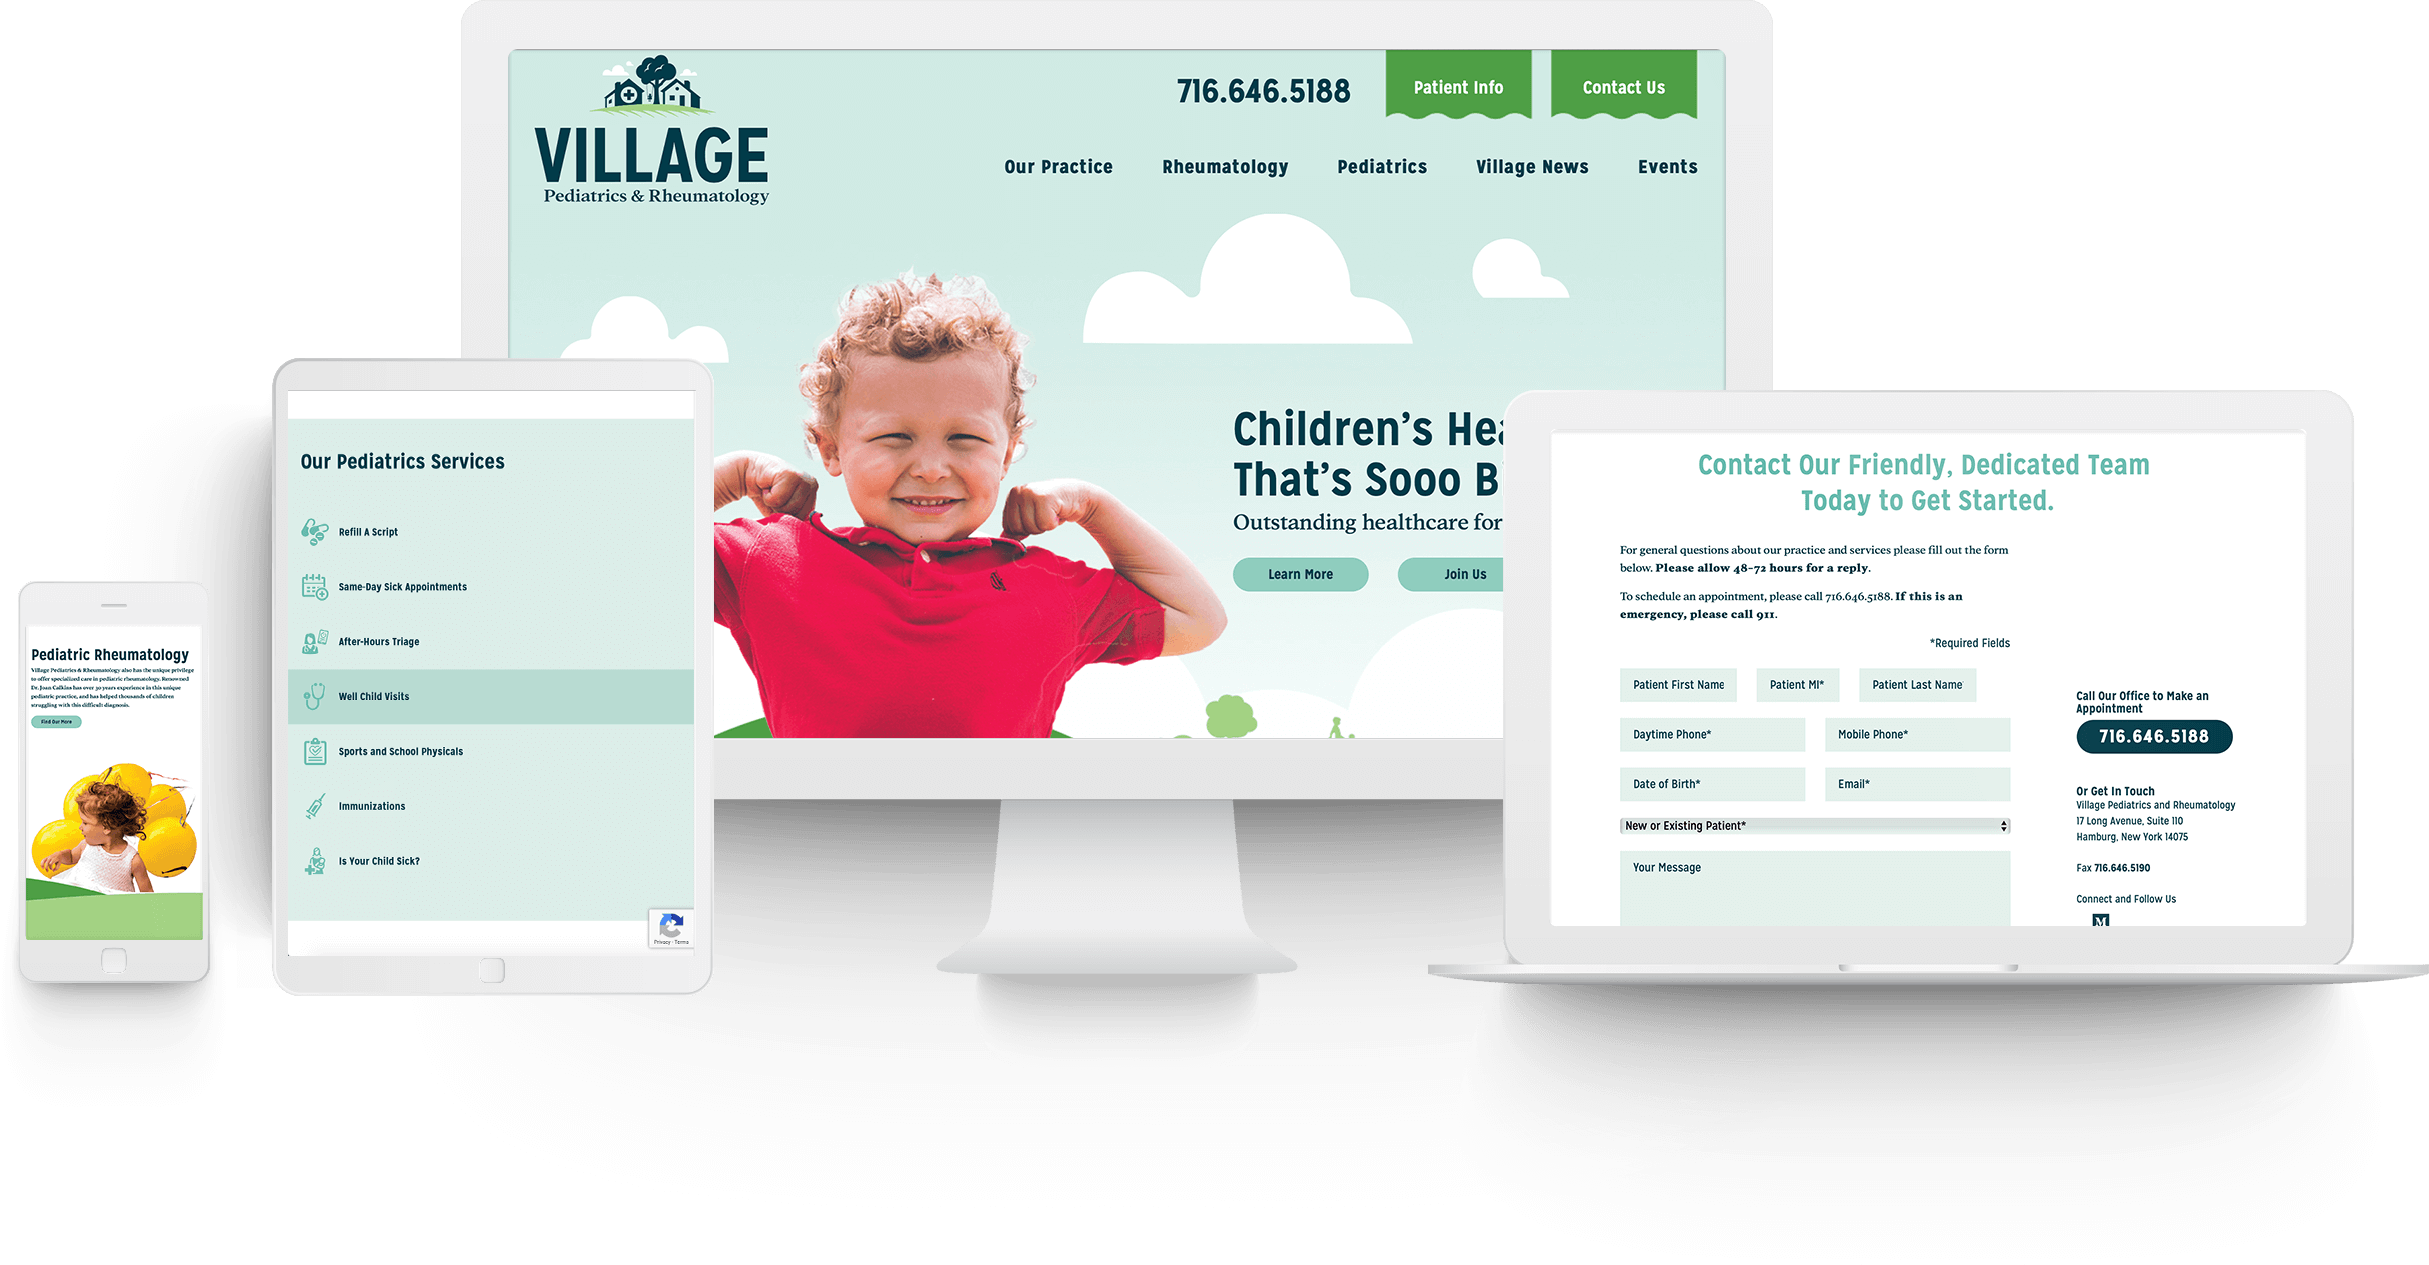 Village Pediatrics & Rheumatology Website Design